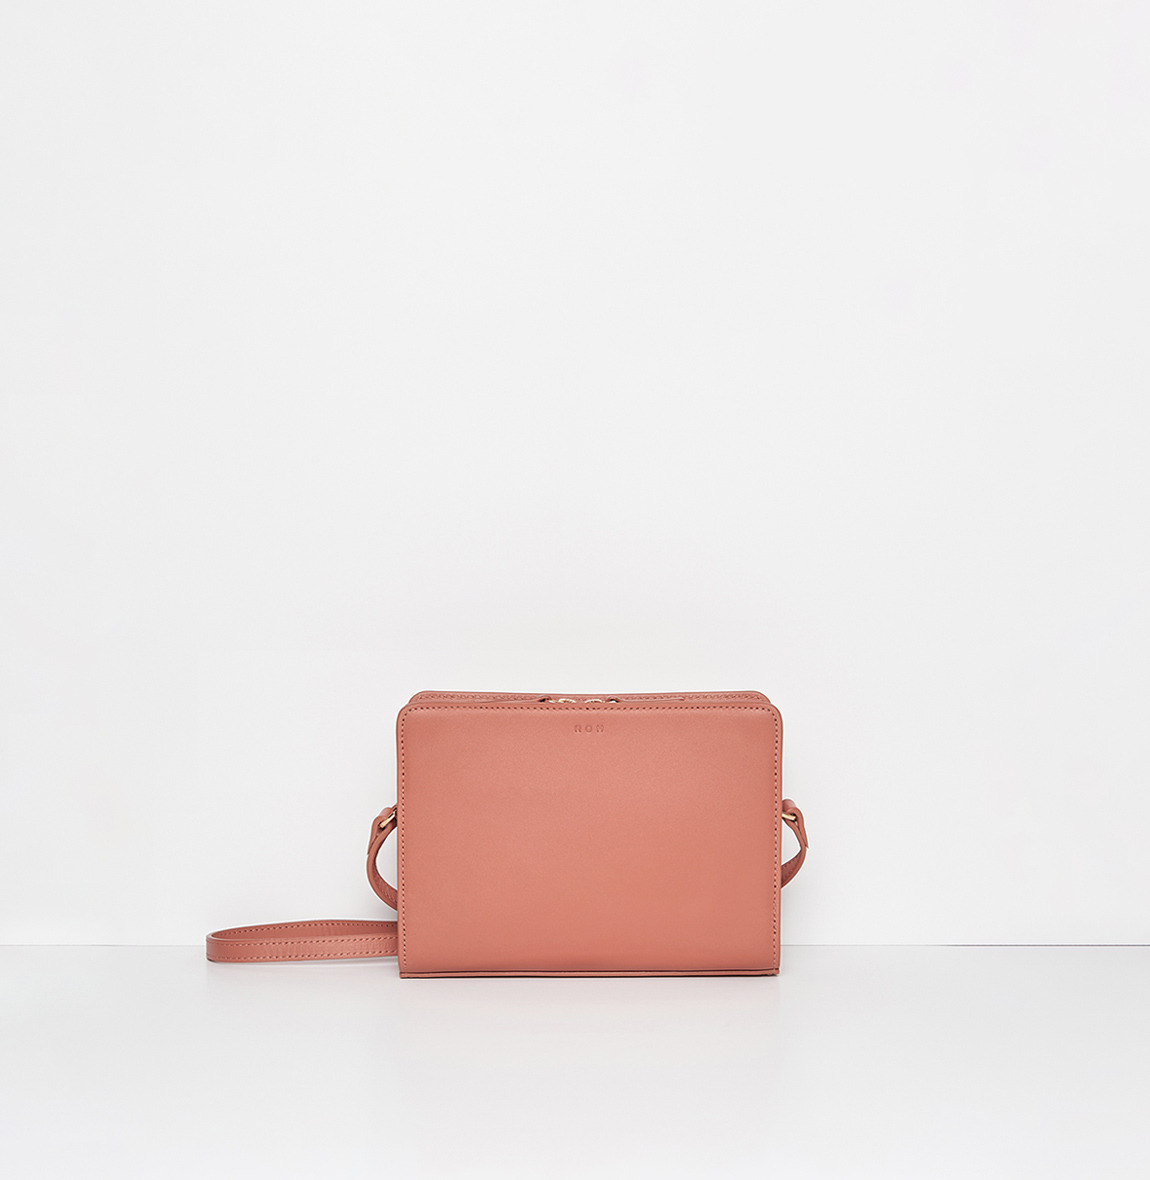 ROH Mini square bag Amber coral